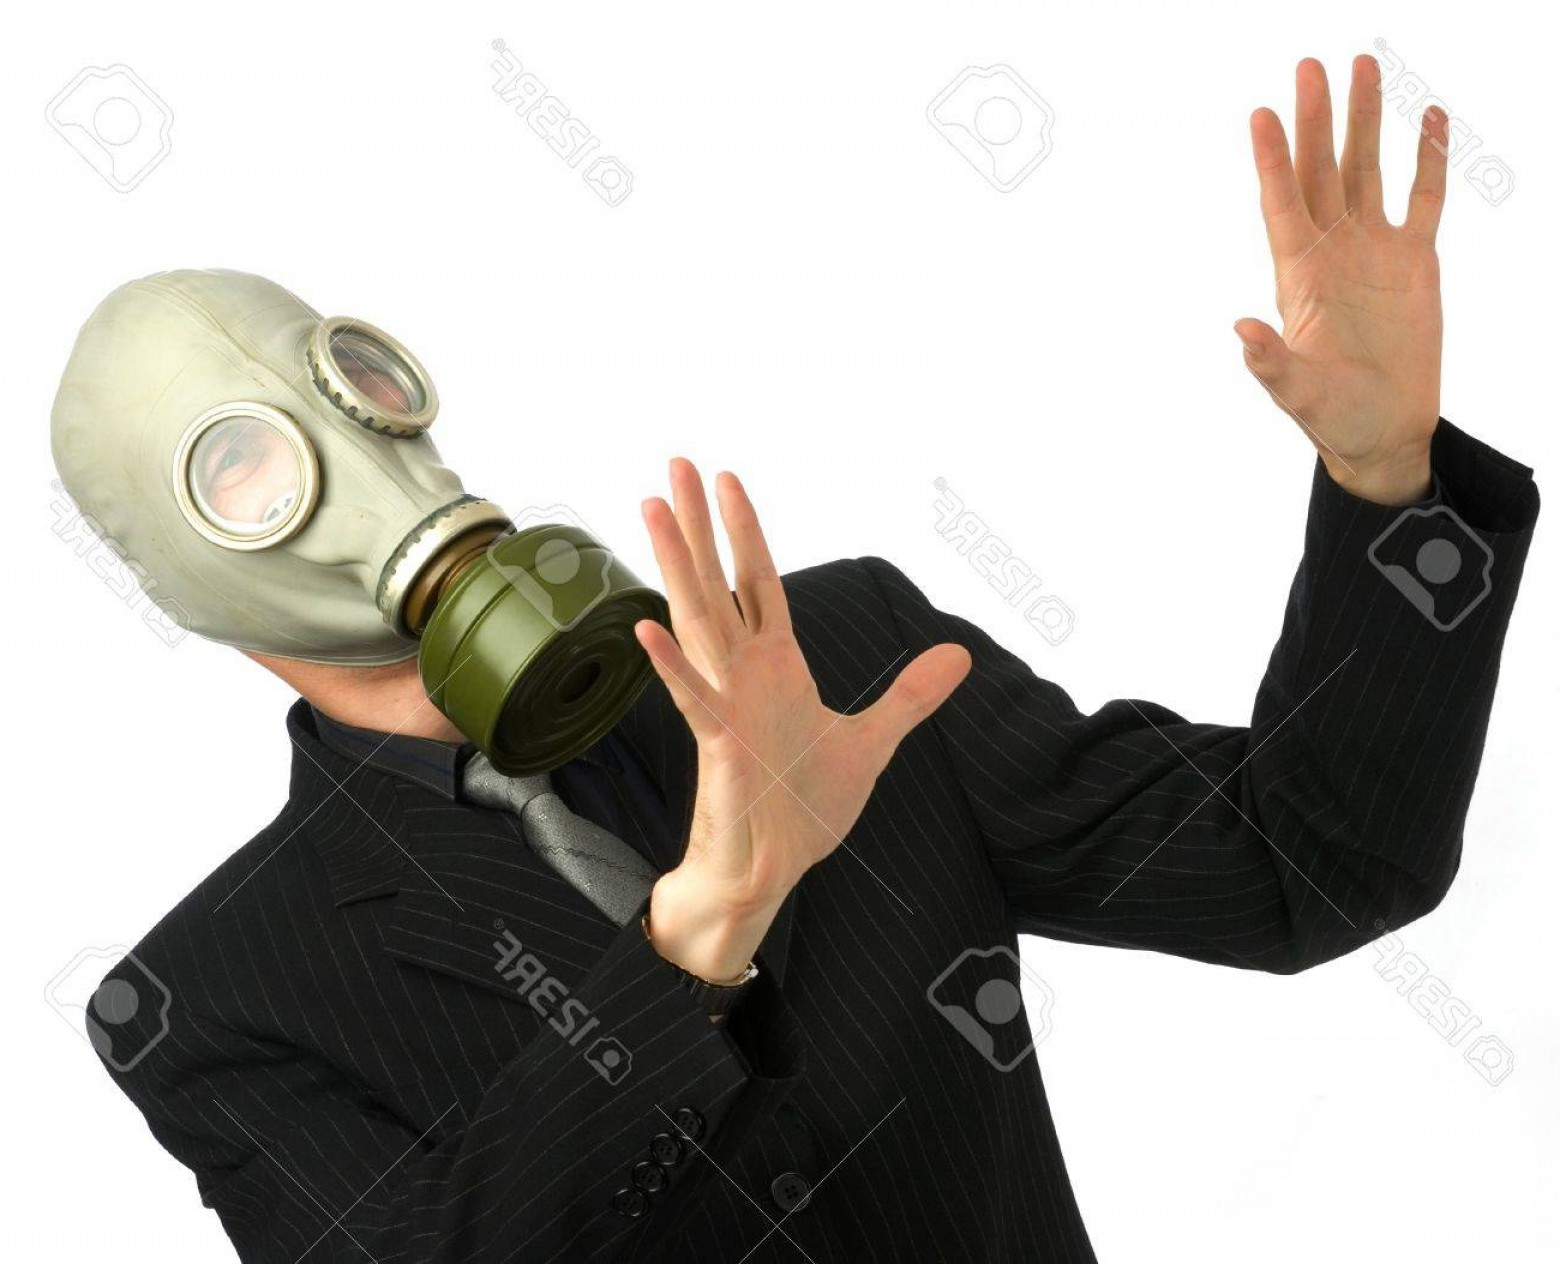 Gas Mask Suit And Tie Vector: Photoman In Suit And Tie With Gas Mask